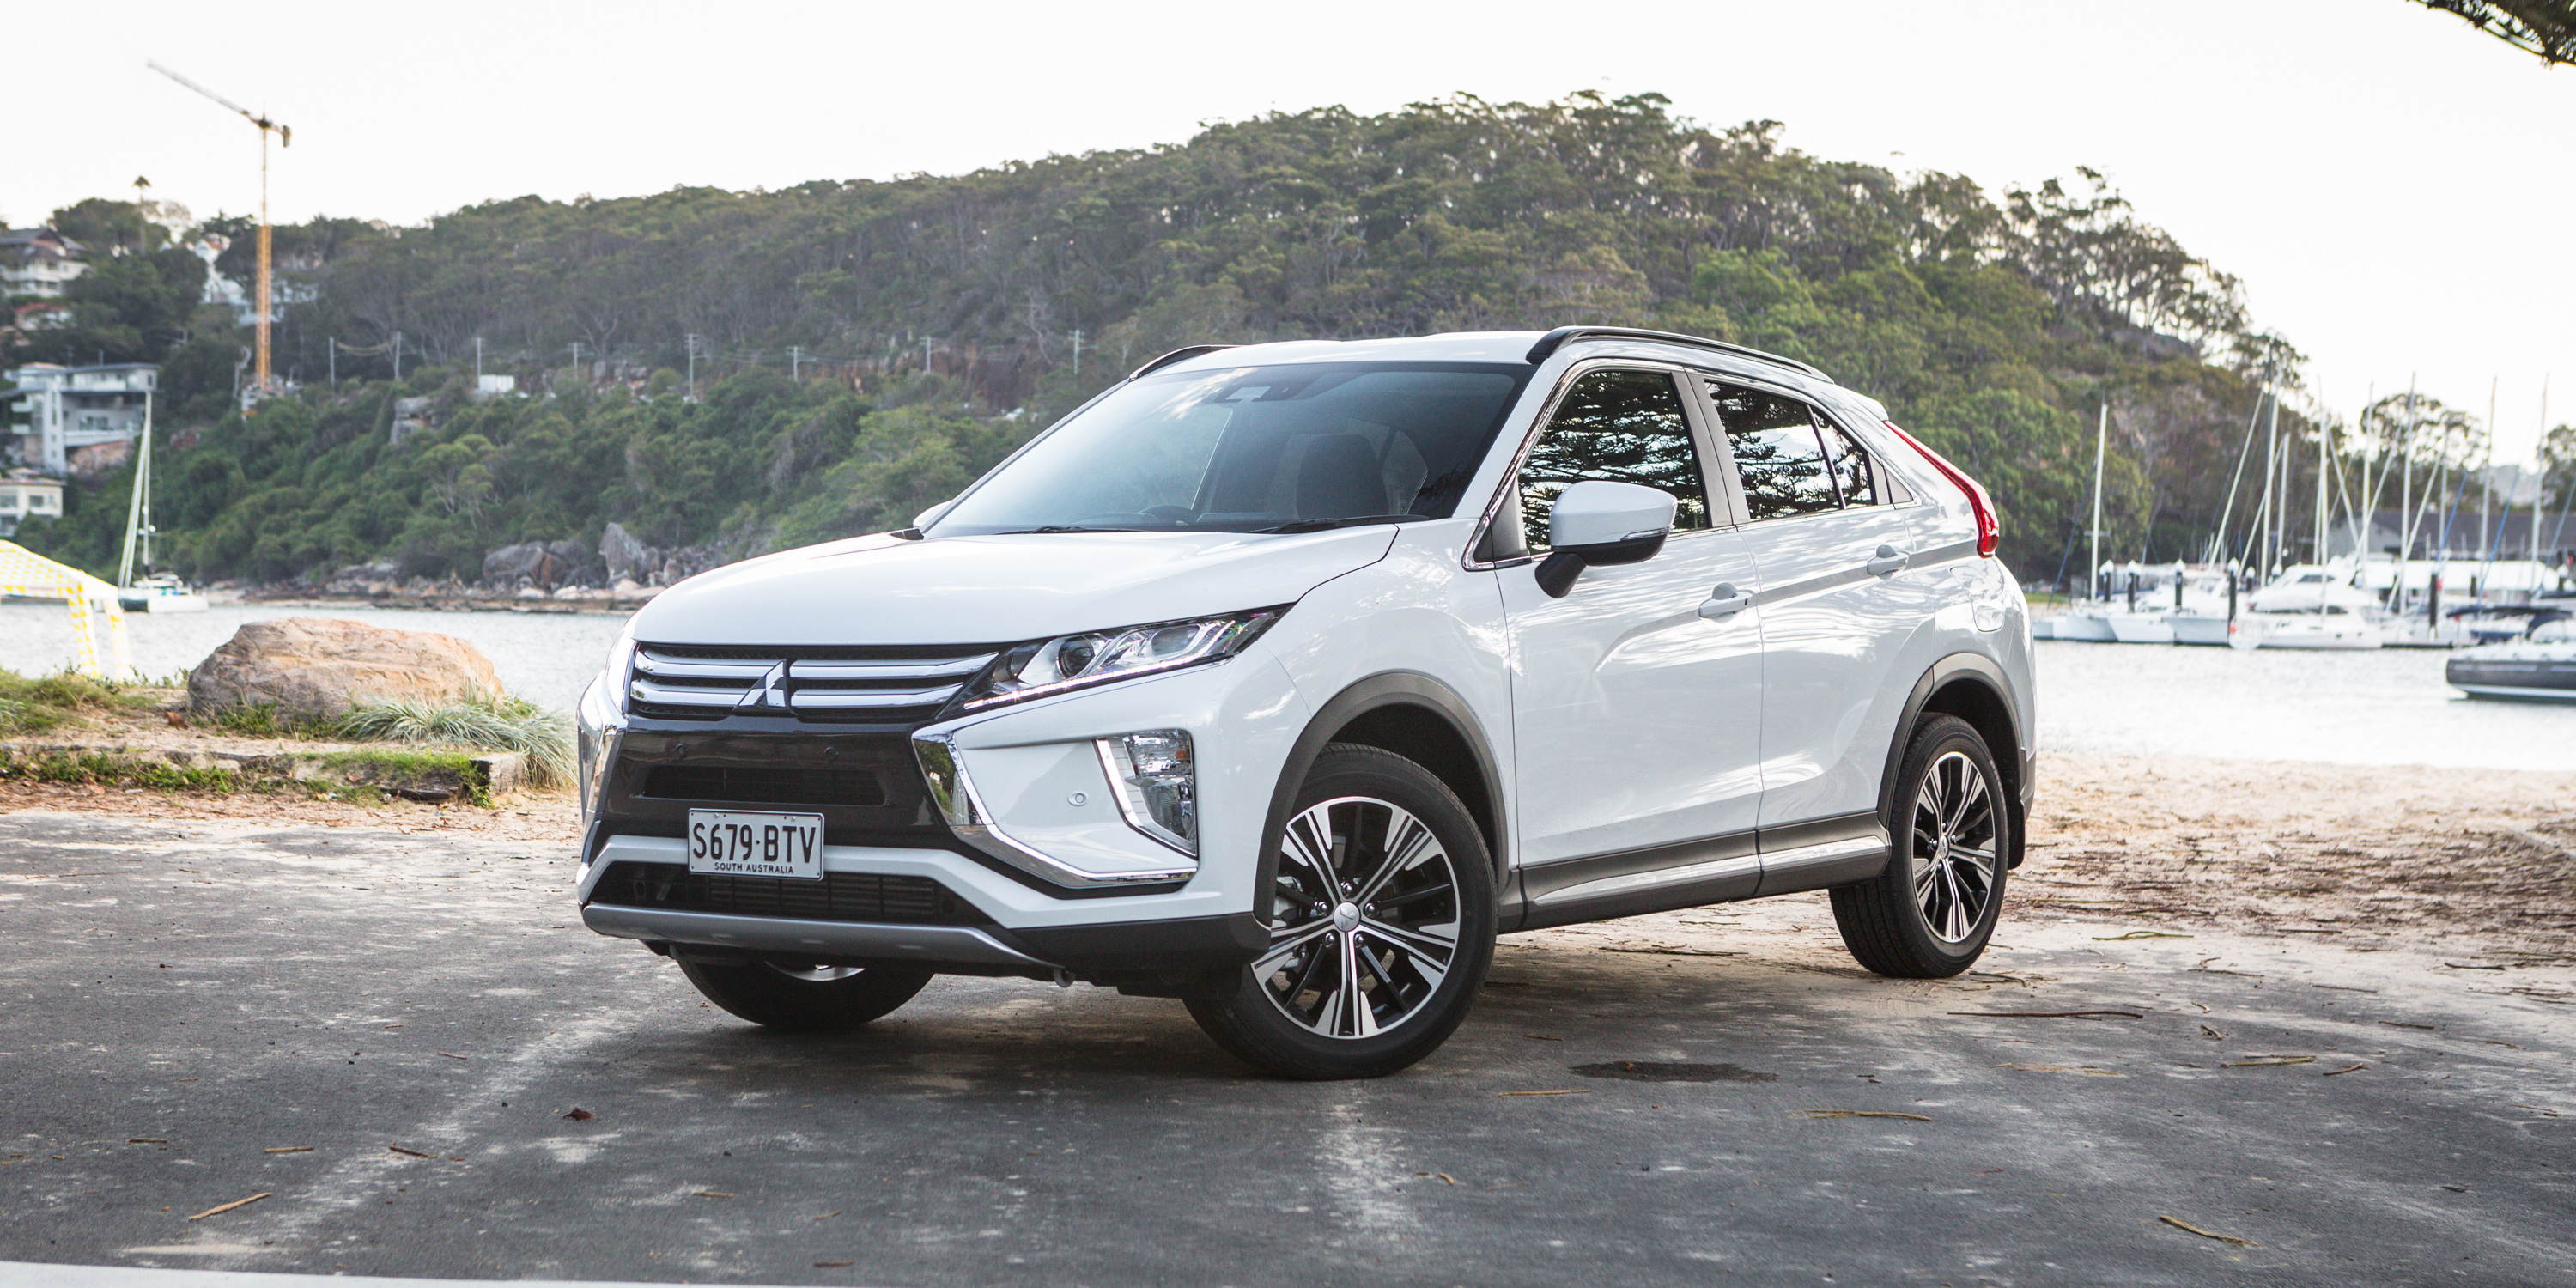 2018 mitsubishi eclipse cross exceed awd review photos caradvice. Black Bedroom Furniture Sets. Home Design Ideas